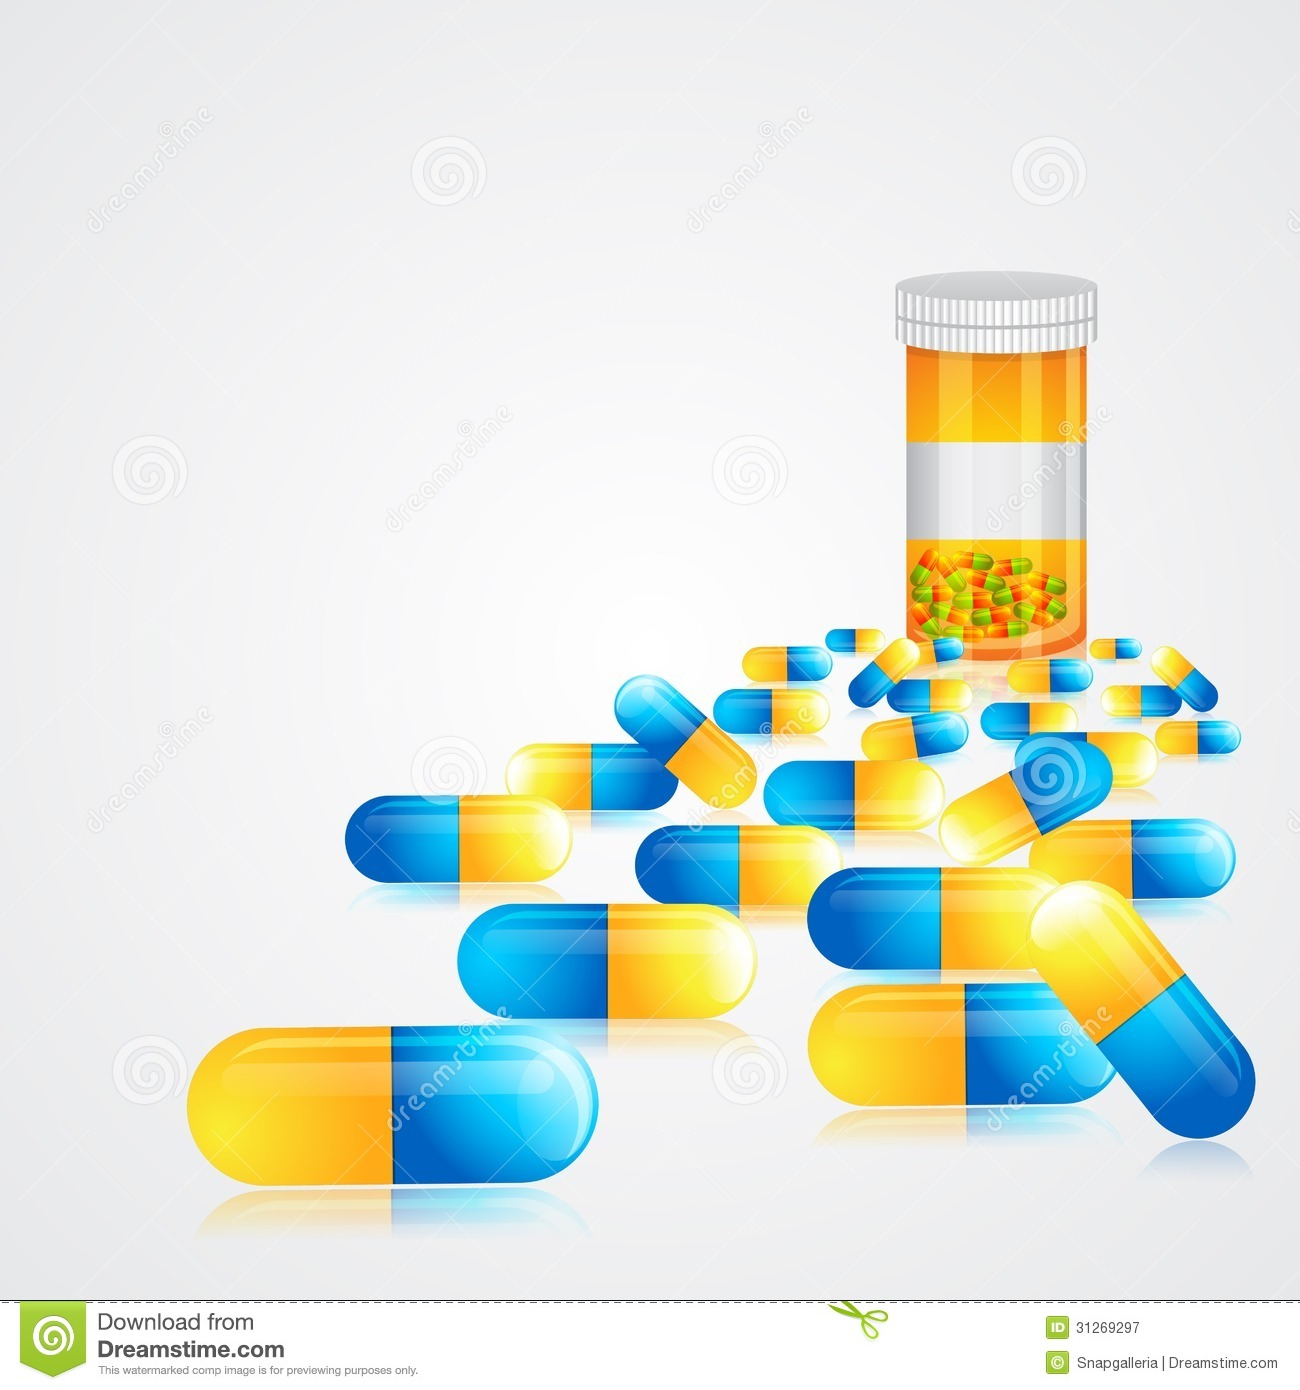 Cut cialis 20 mg in half